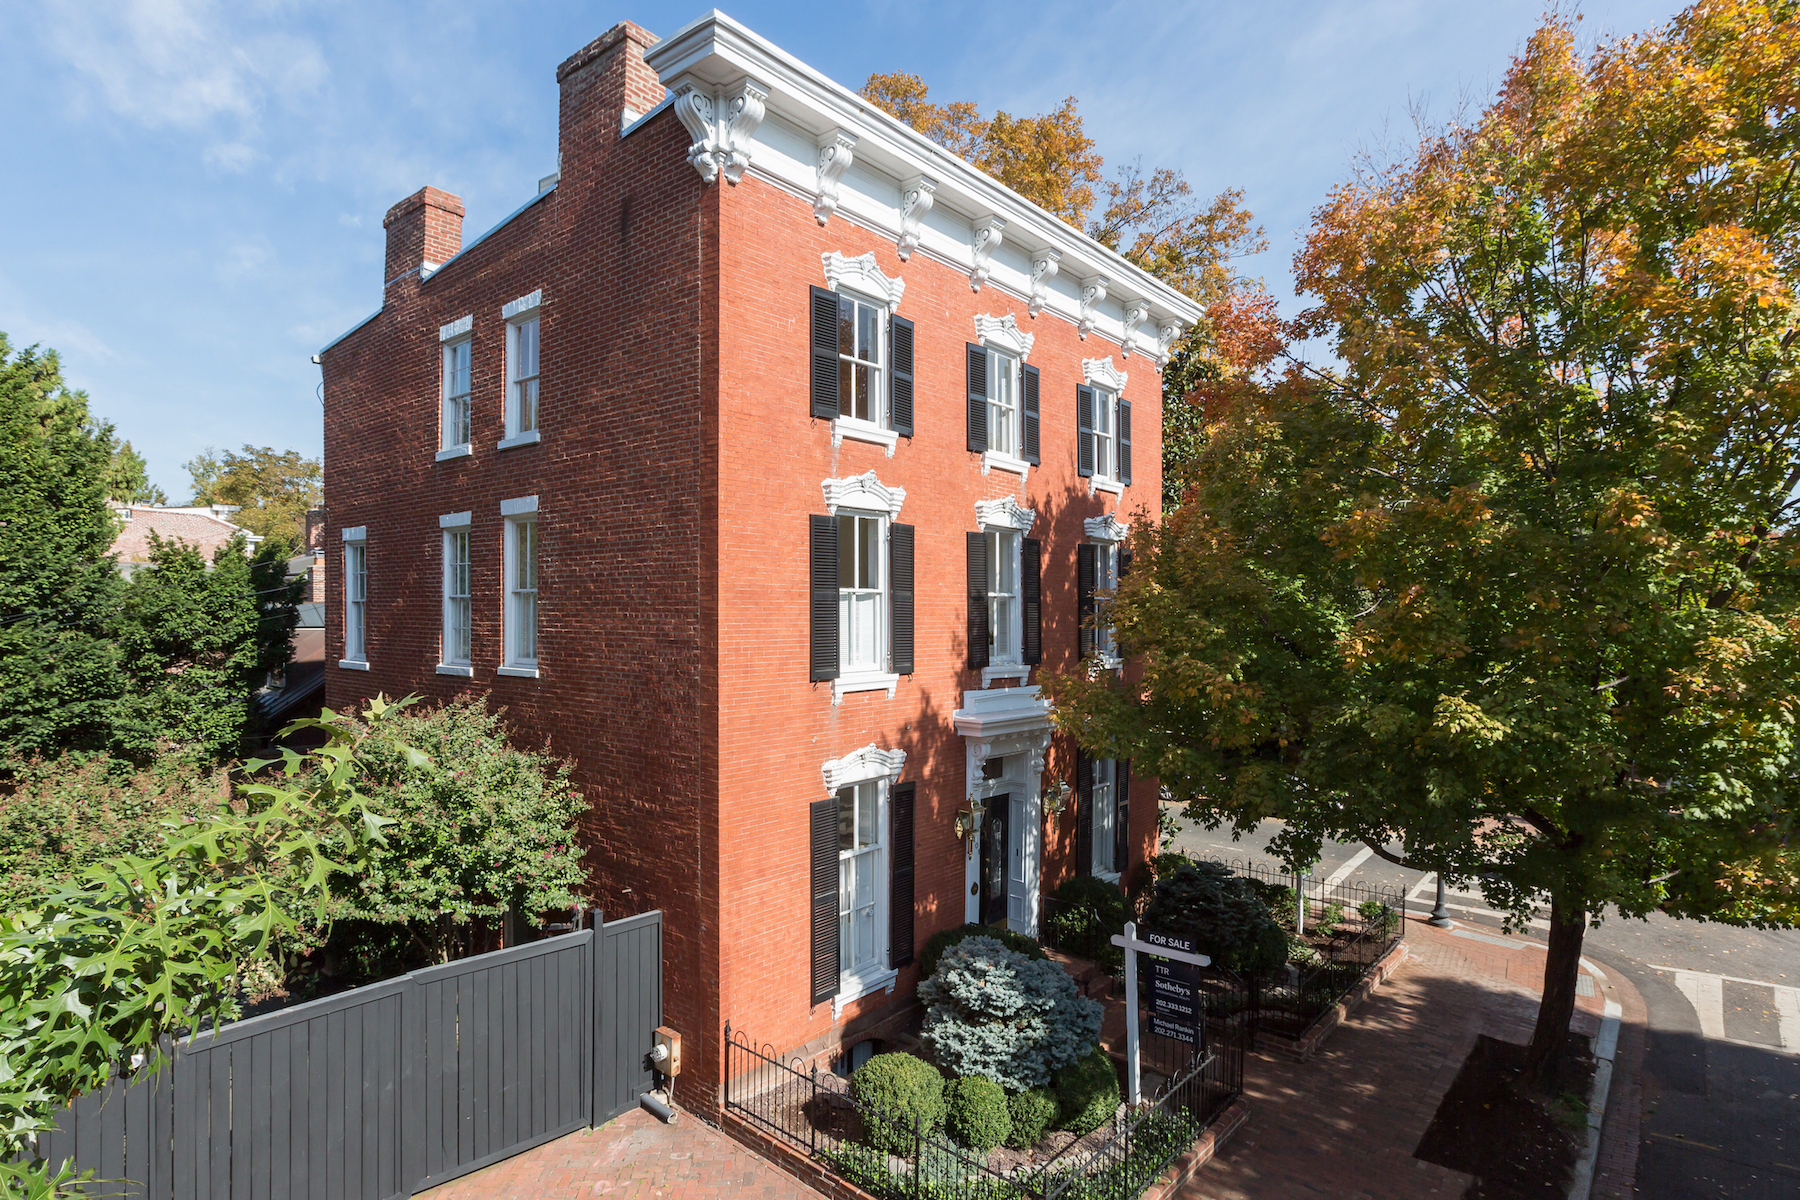 Single Family Home for Sale at Georgetown 3401 N Street Nw Washington, District Of Columbia 20007 United States